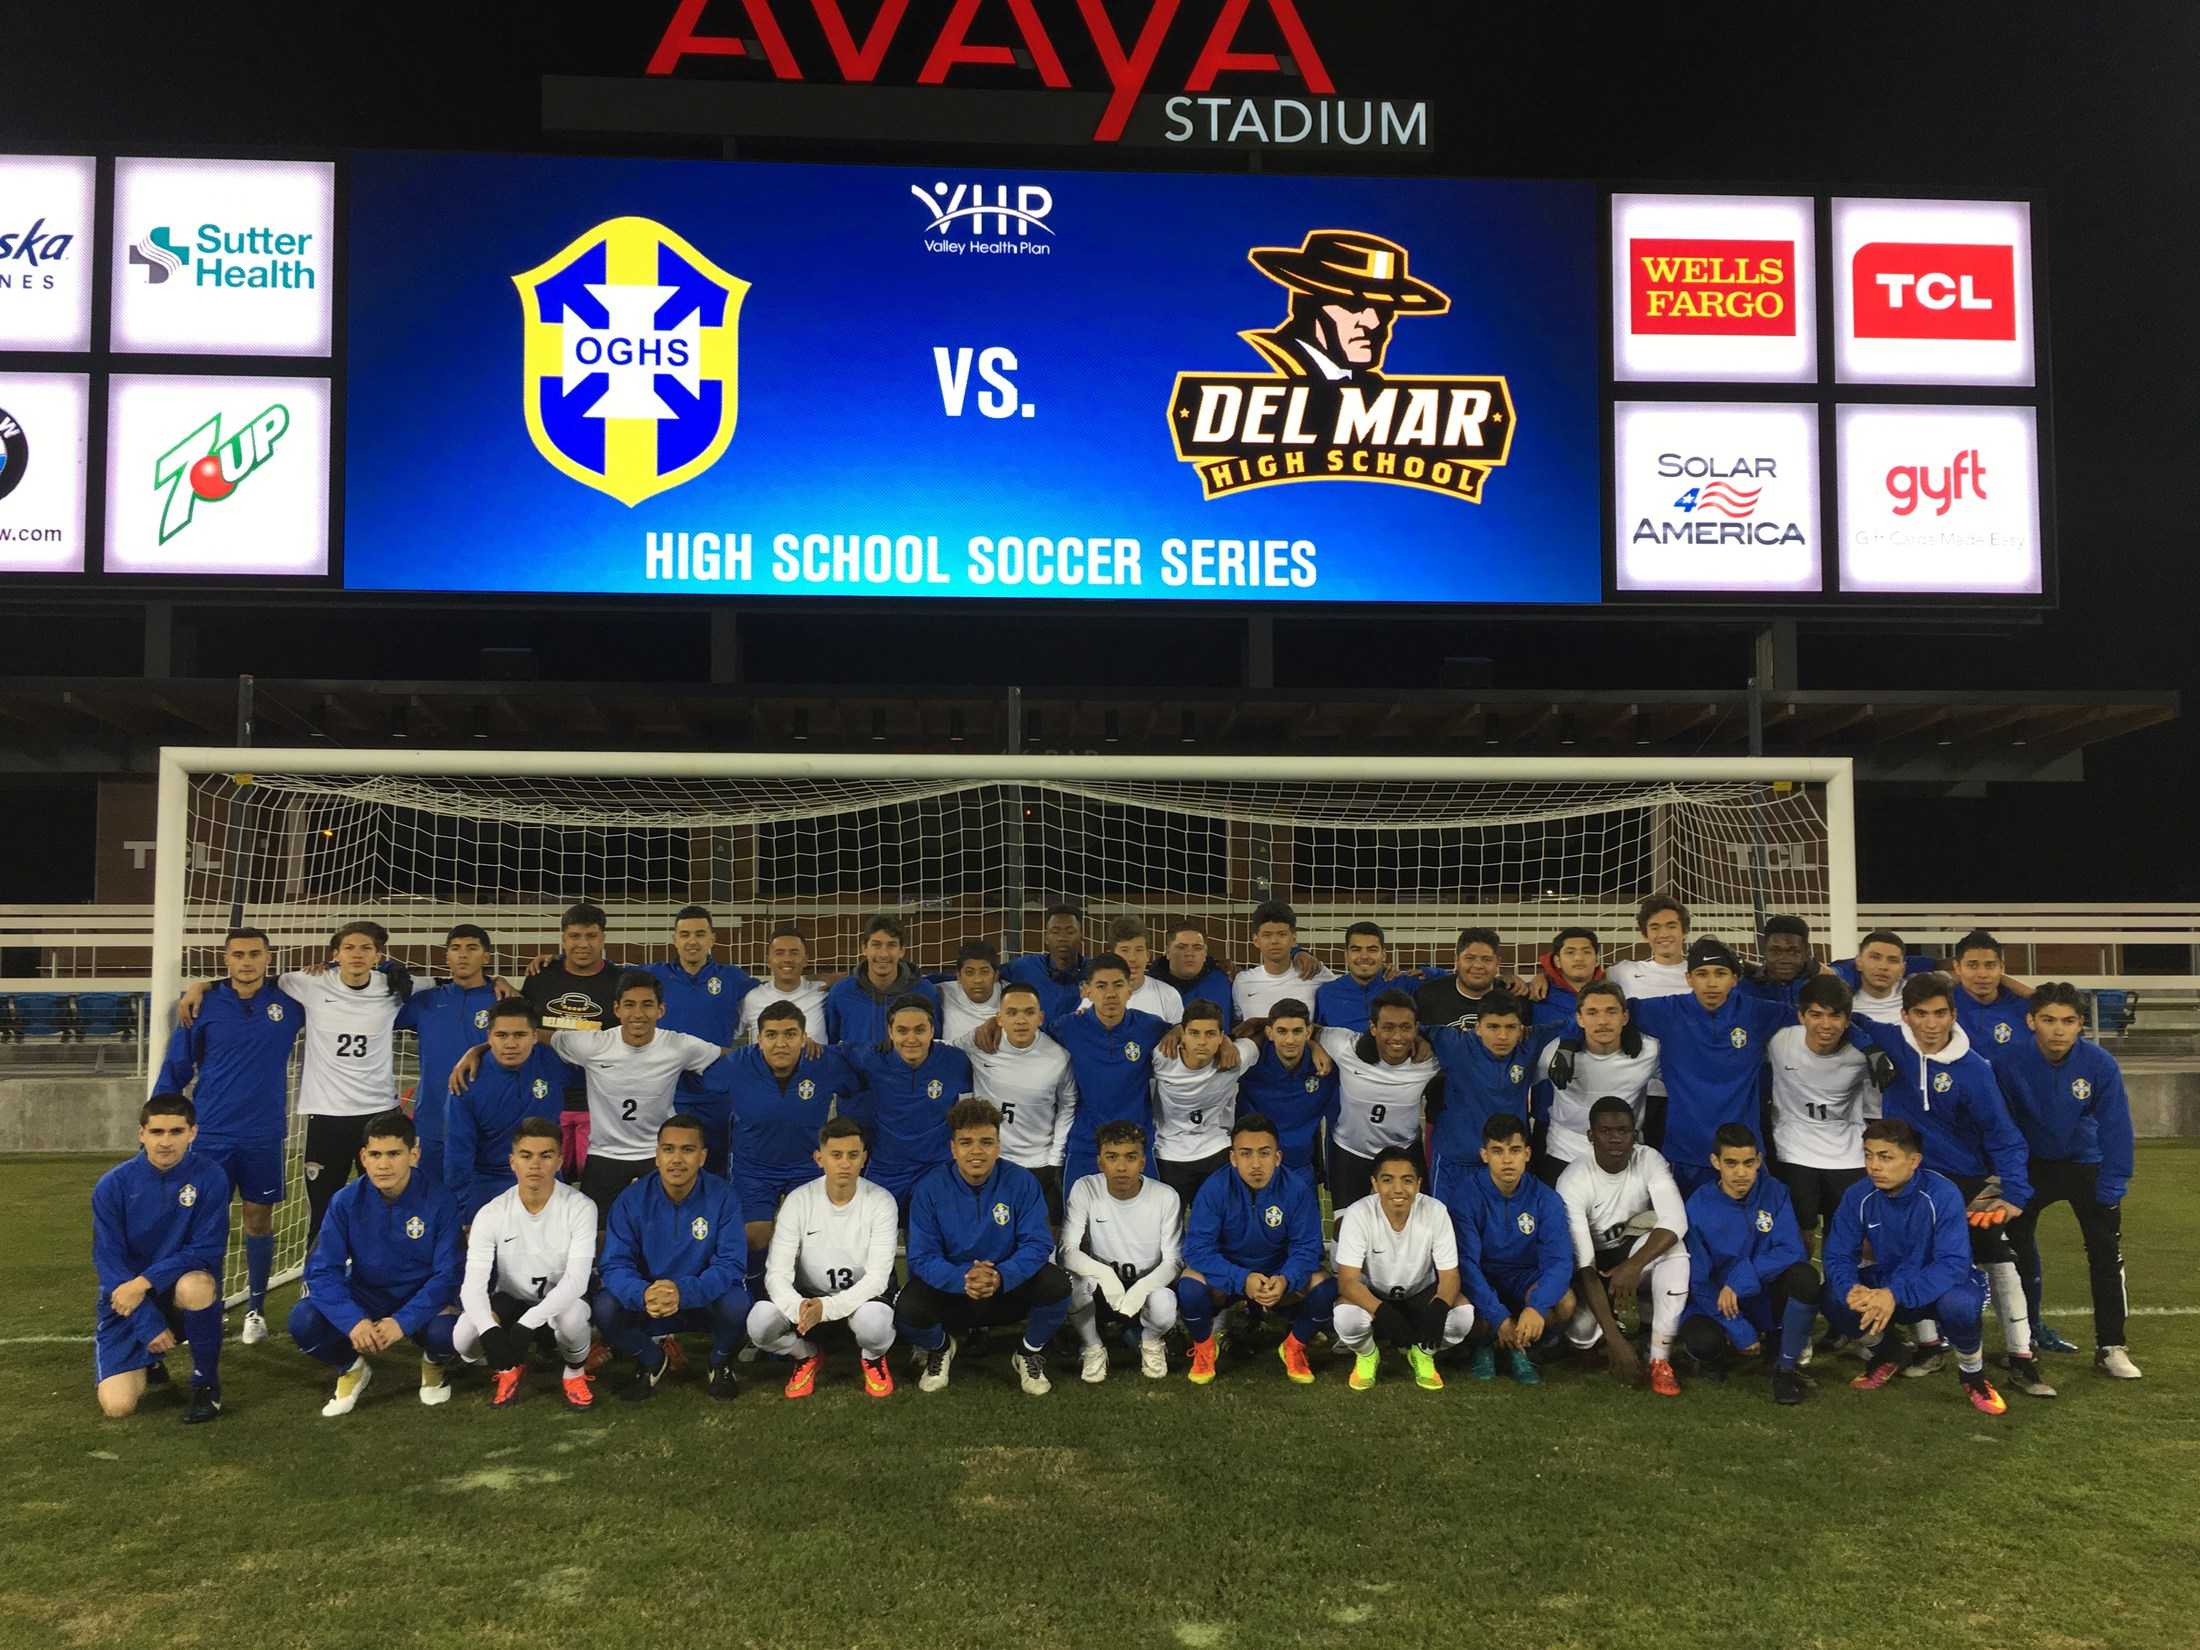 Del Mar High, Oak Grove High soccer teams got to play at Avaya Stadium